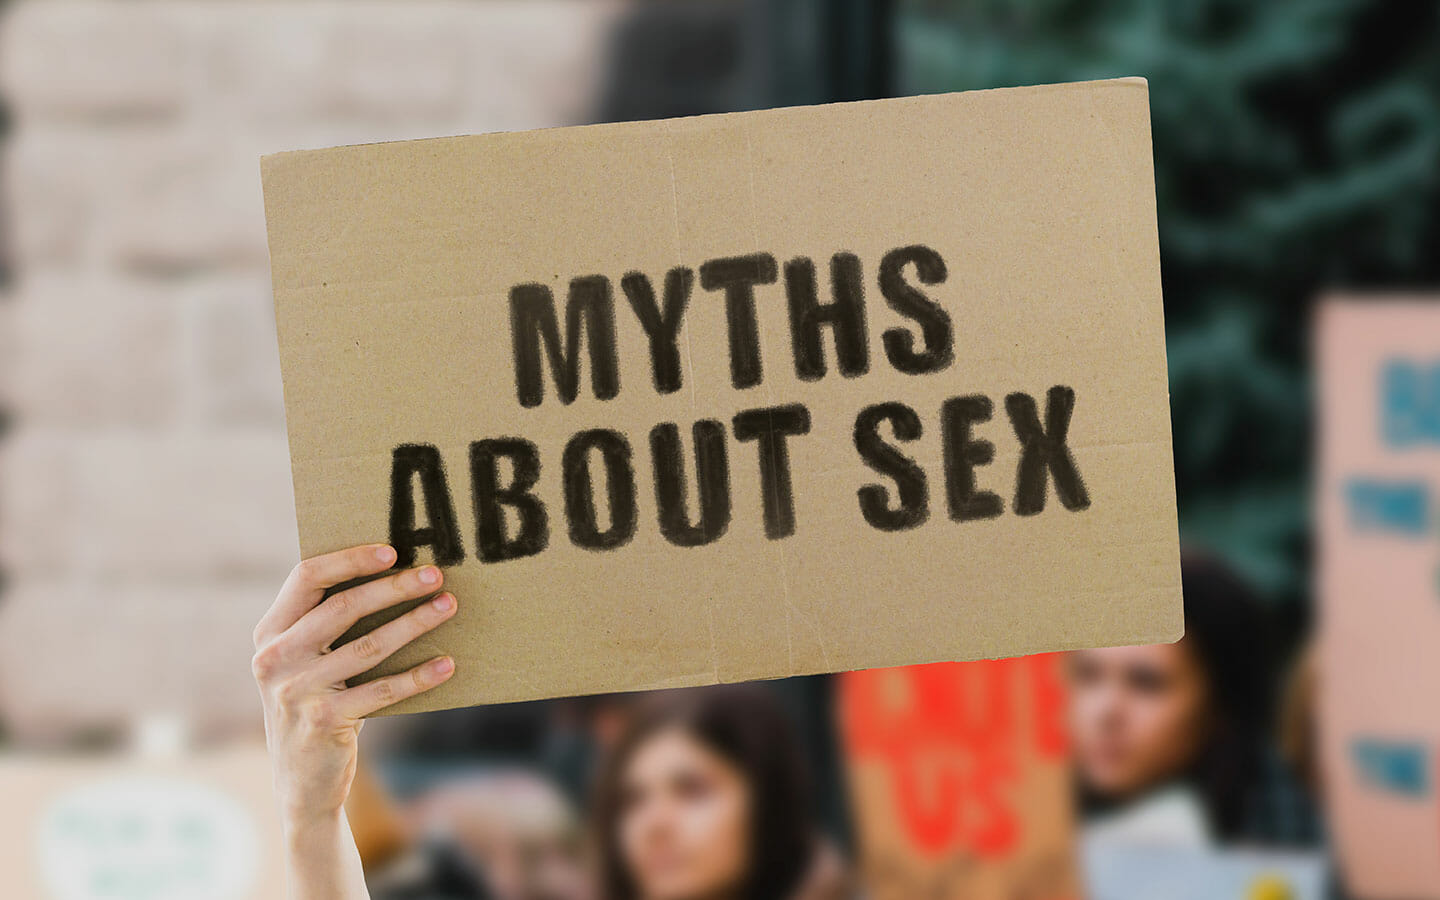 The biggest myths about sex